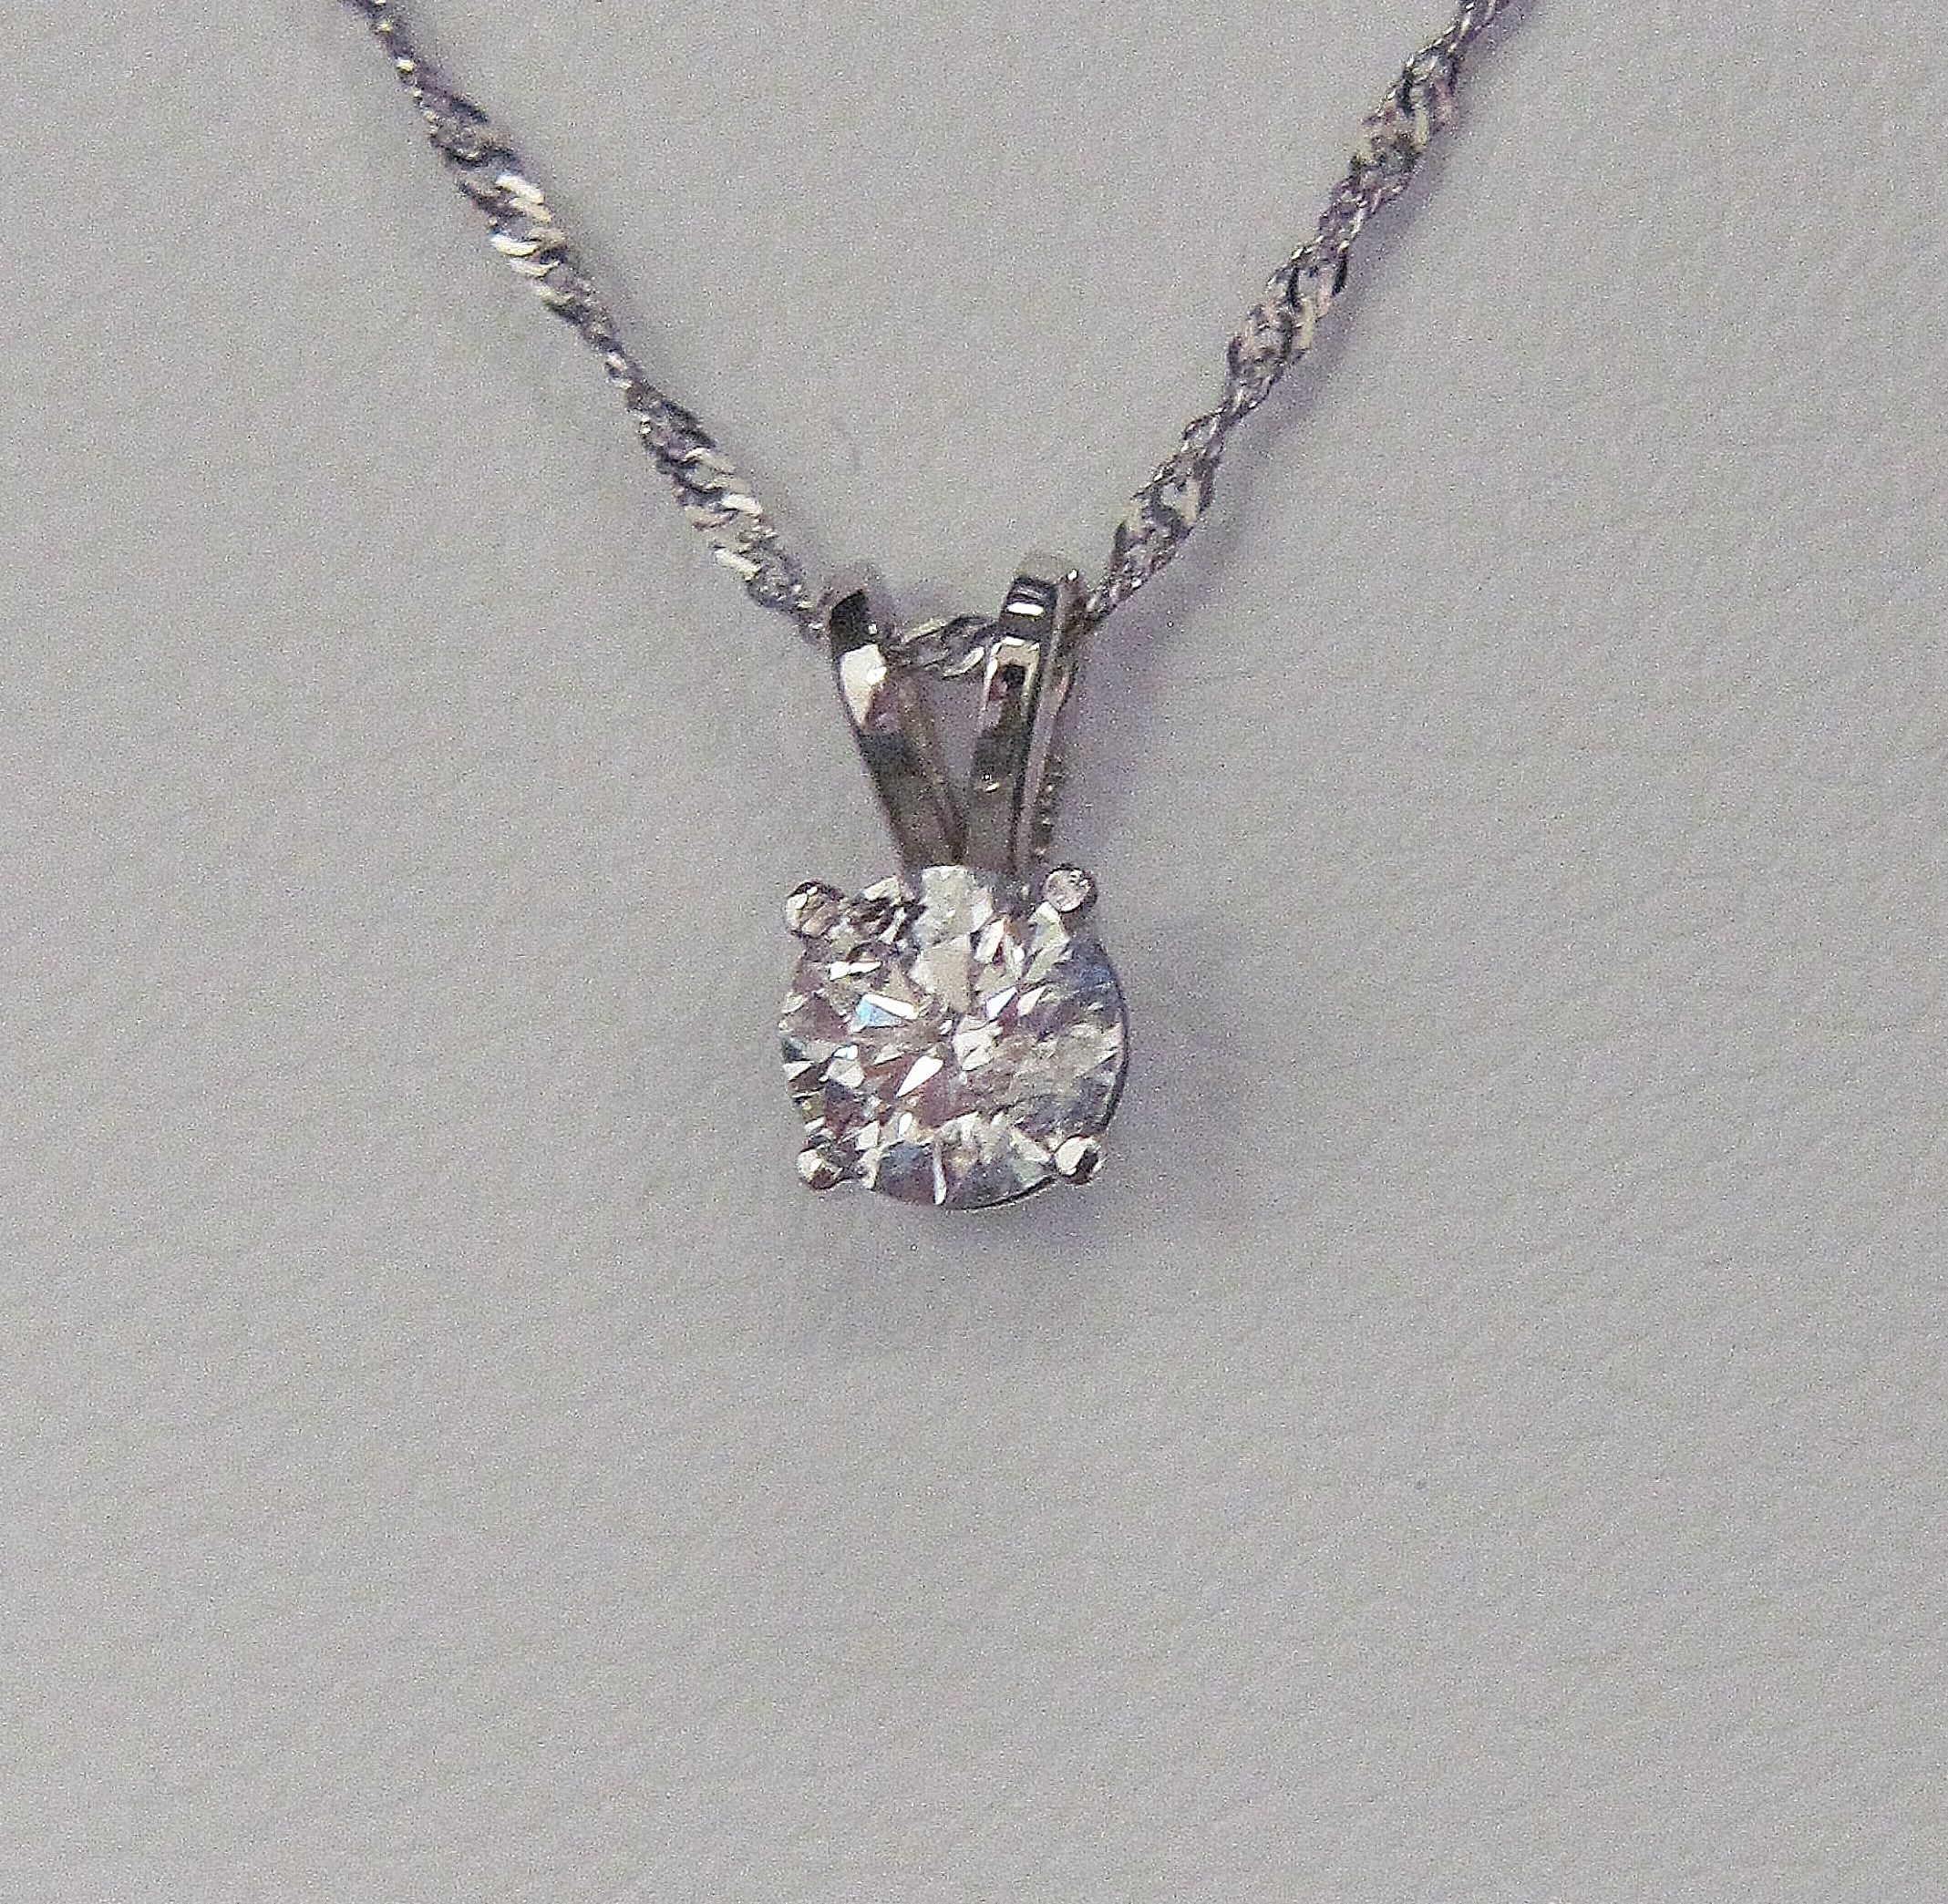 catalog carat diamond wg brilliant necklace